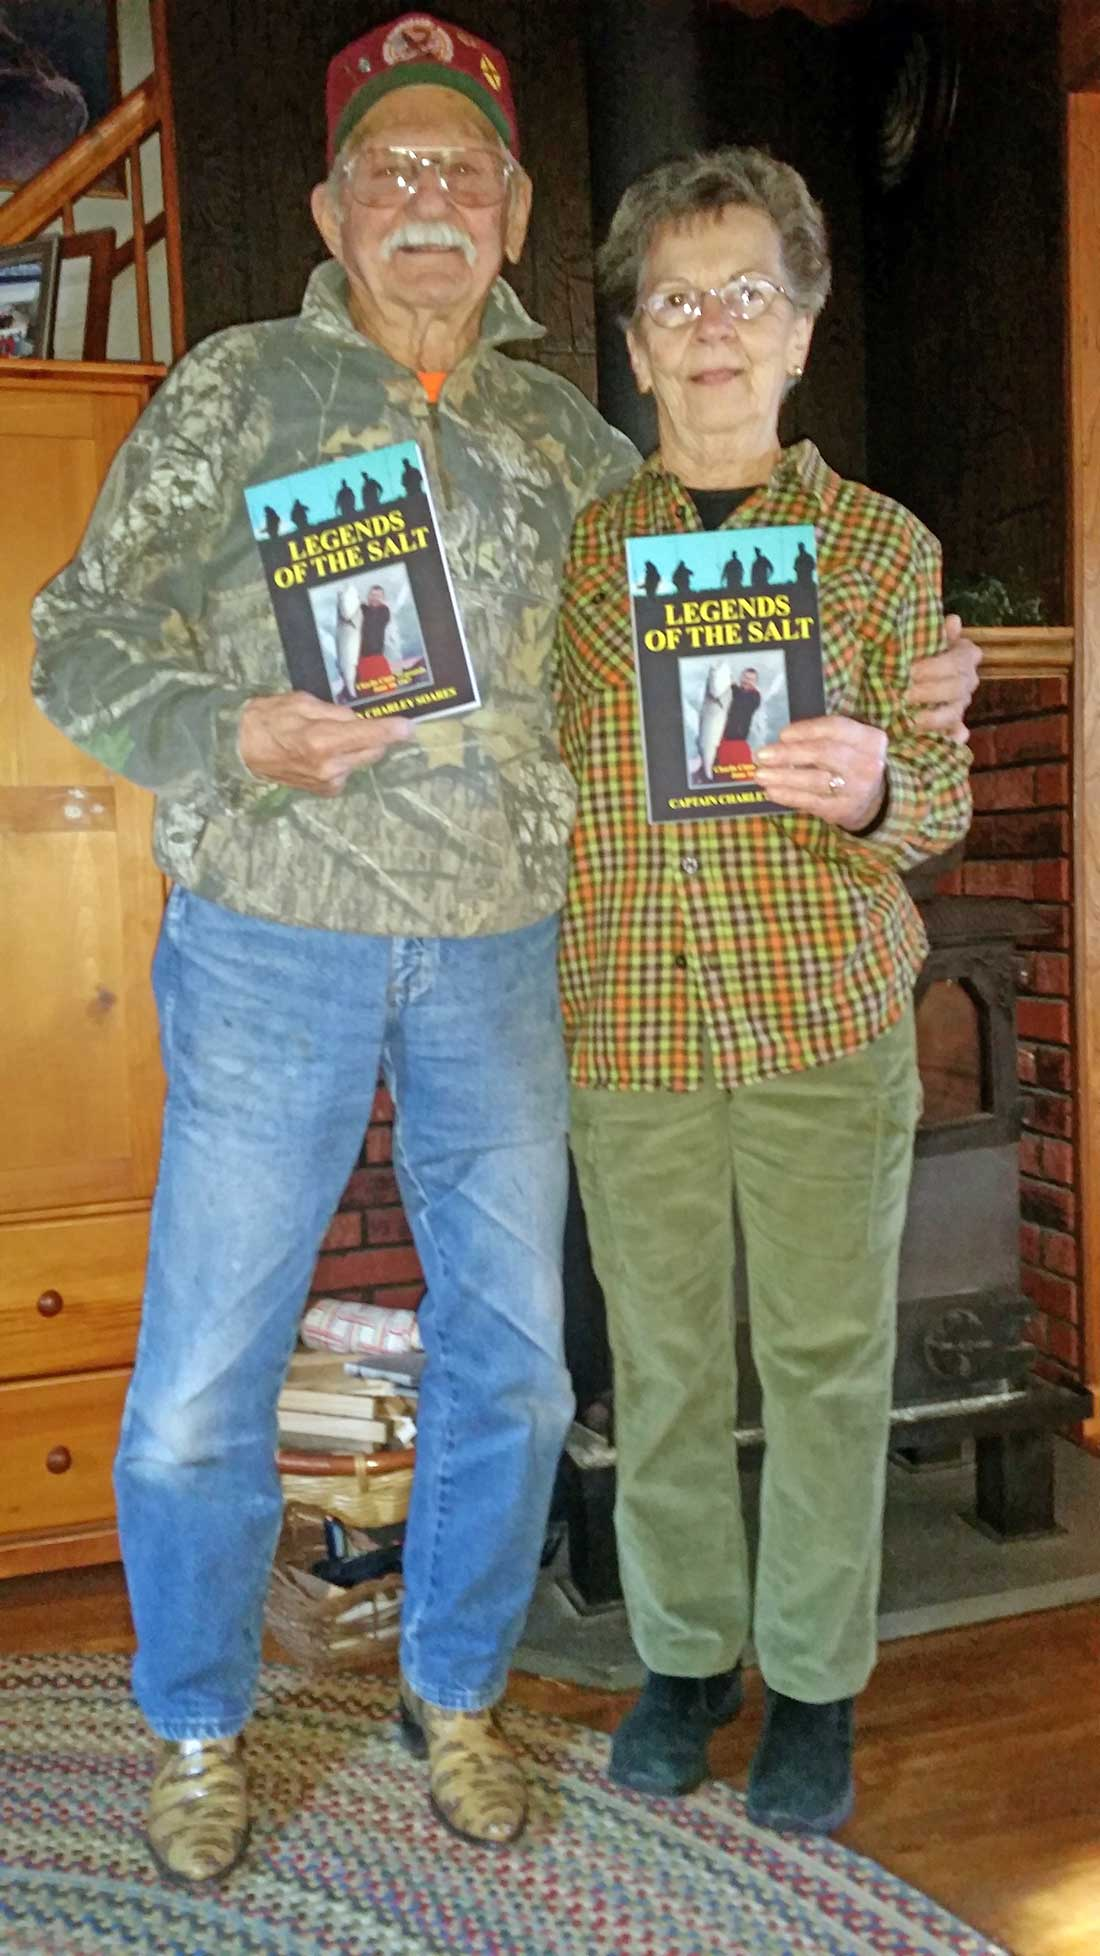 Cinto visited the author's home